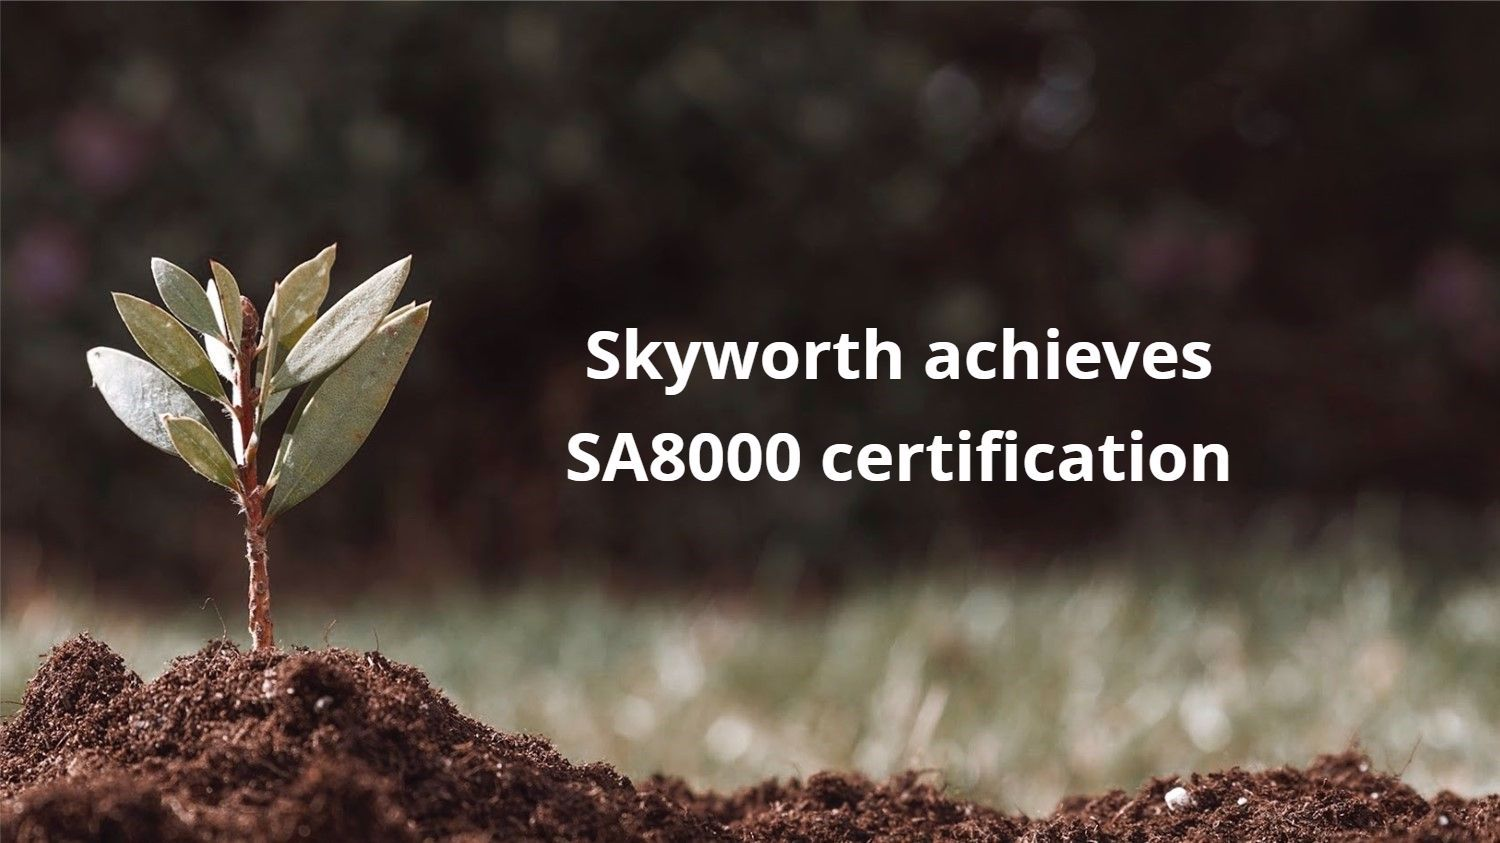 Skyworth achieves SA8000 certification